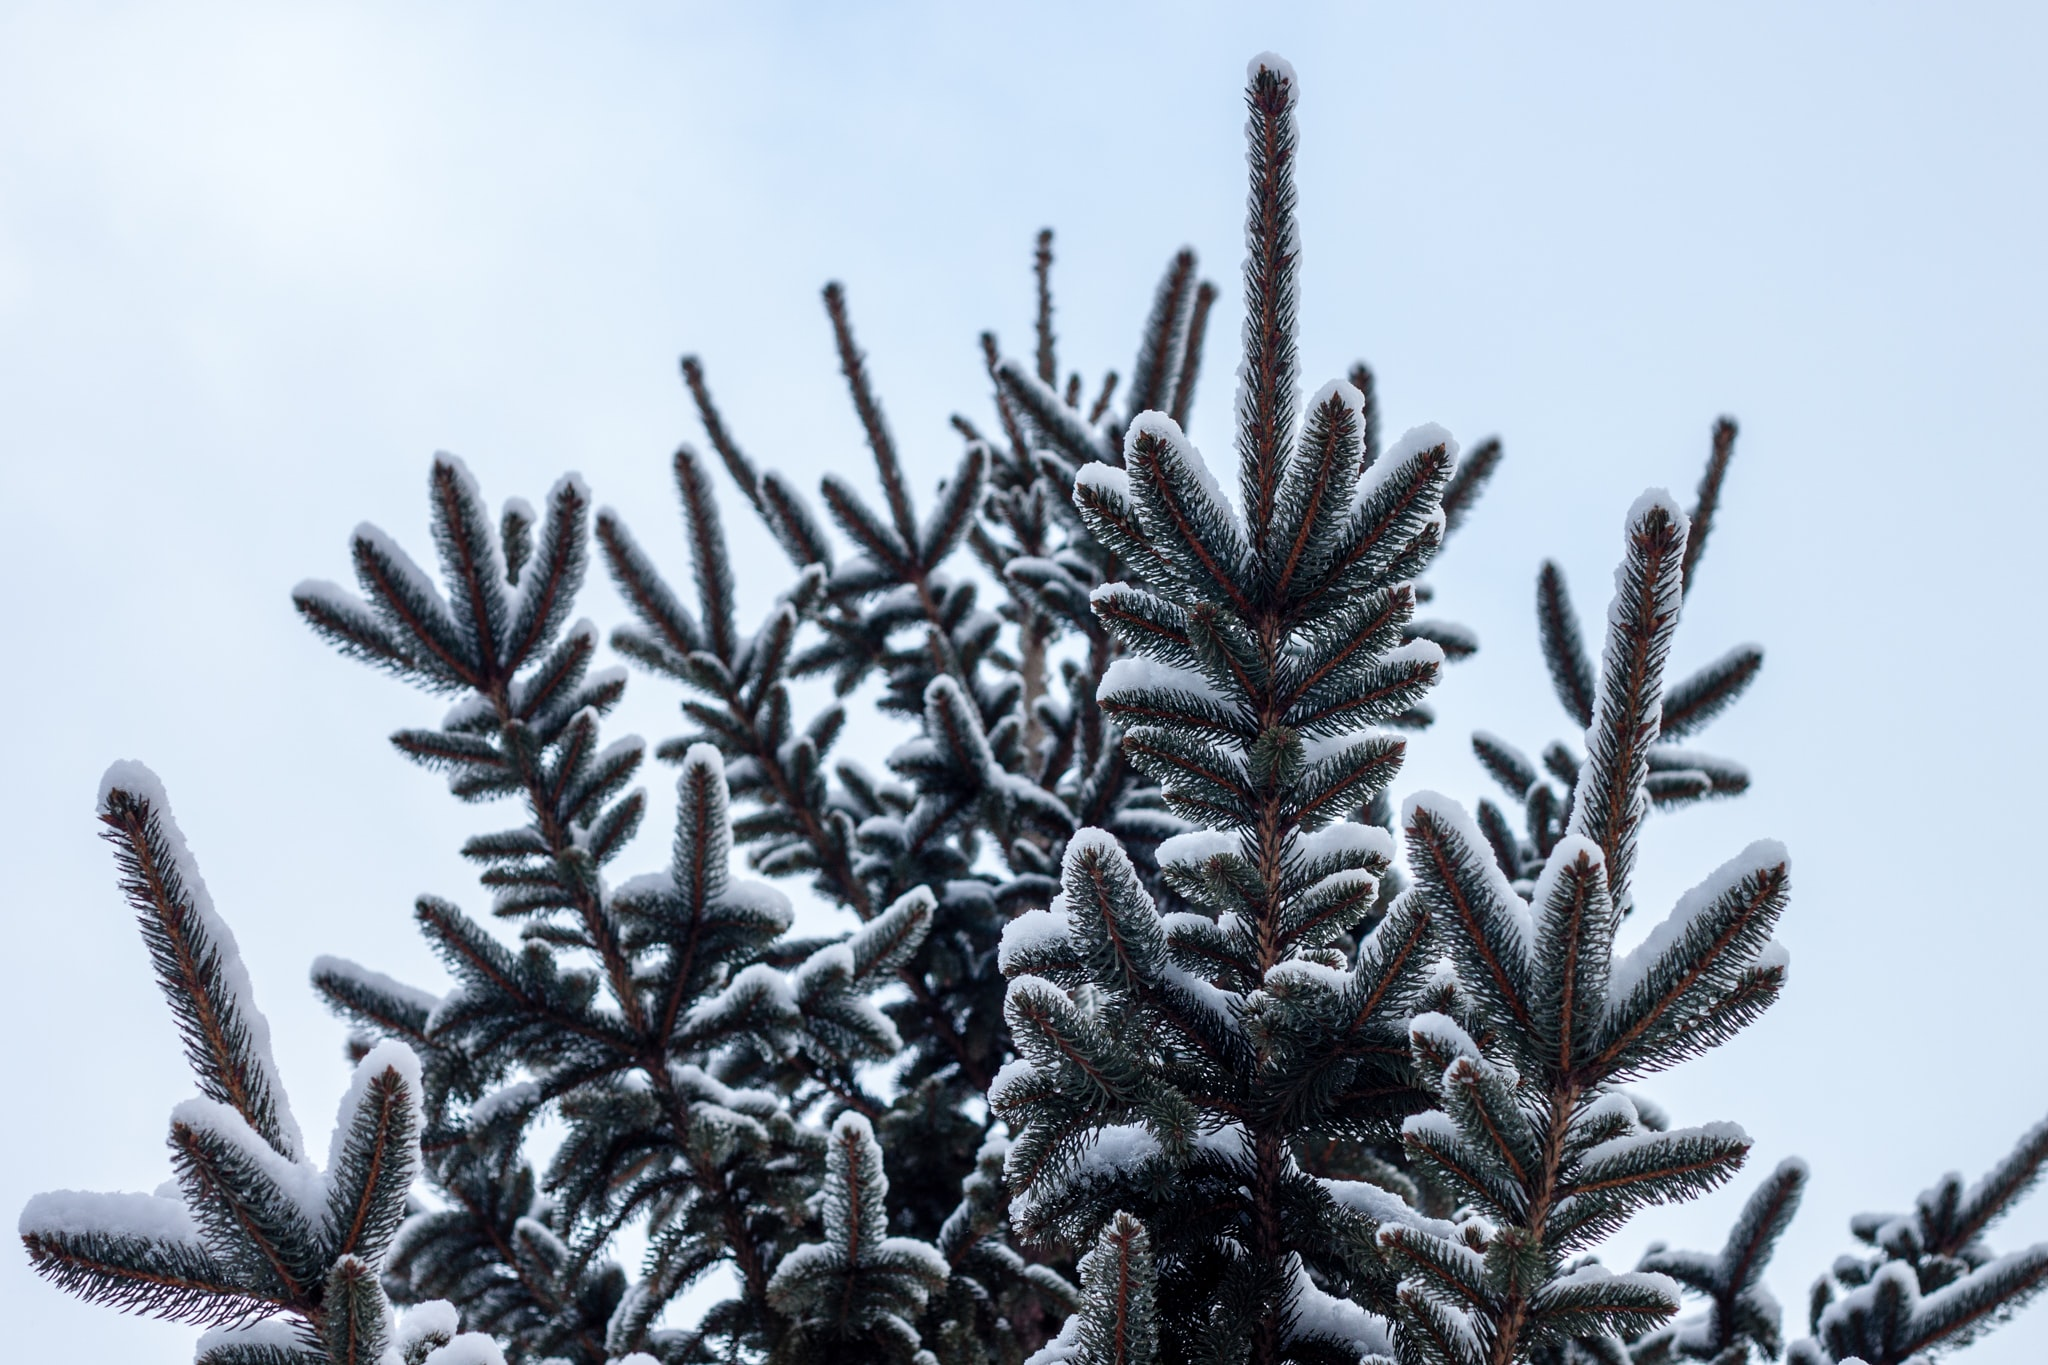 Snow on fir tree leaves.